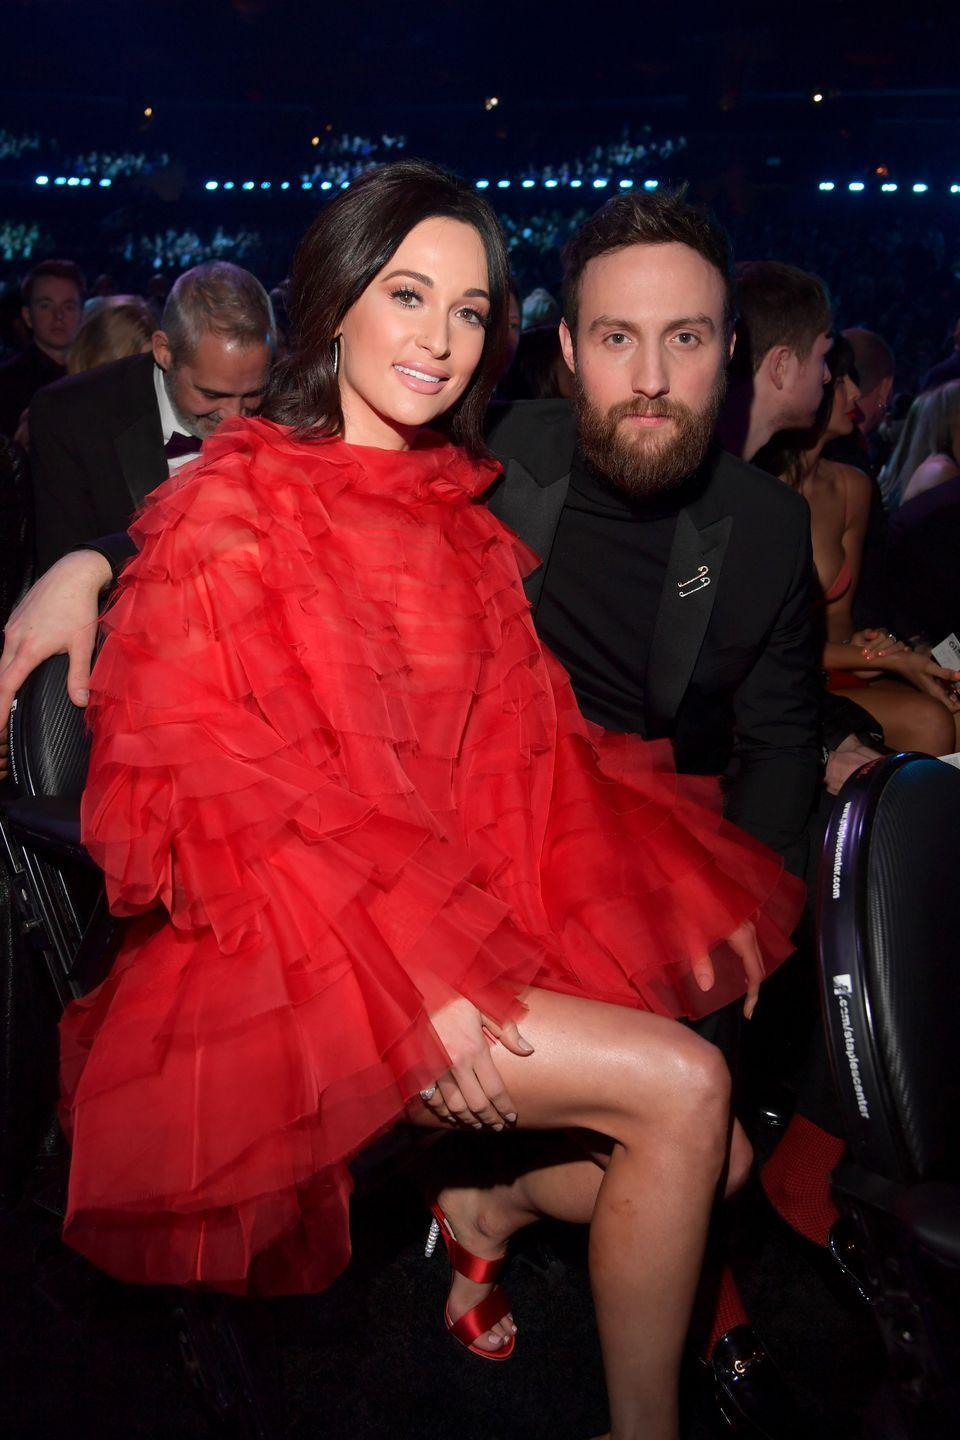 "<p>Kacey Musgraves and Ruston Kelly's cosmic connection was sparked at a songwriter's showcase in 2016 when Kacey gave Ruston her number so they could write together. Two years later, Ruston and Kacey tied the knot, but ran into trouble sometime this summer. They announced their split in July. </p><p>""Though we are parting ways in marriage, we will remain true friends for the rest of our lives. We hold no blame, anger, or contempt for each other and we ask for privacy and positive wishes for us both as we learn how to navigate through this,"" they wrote in a statement to <em><a href=""https://people.com/country/kacey-musgraves-ruston-kelly-split-everything-theyve-said-about-relationship/"" rel=""nofollow noopener"" target=""_blank"" data-ylk=""slk:People"" class=""link rapid-noclick-resp"">People</a></em>.</p>"